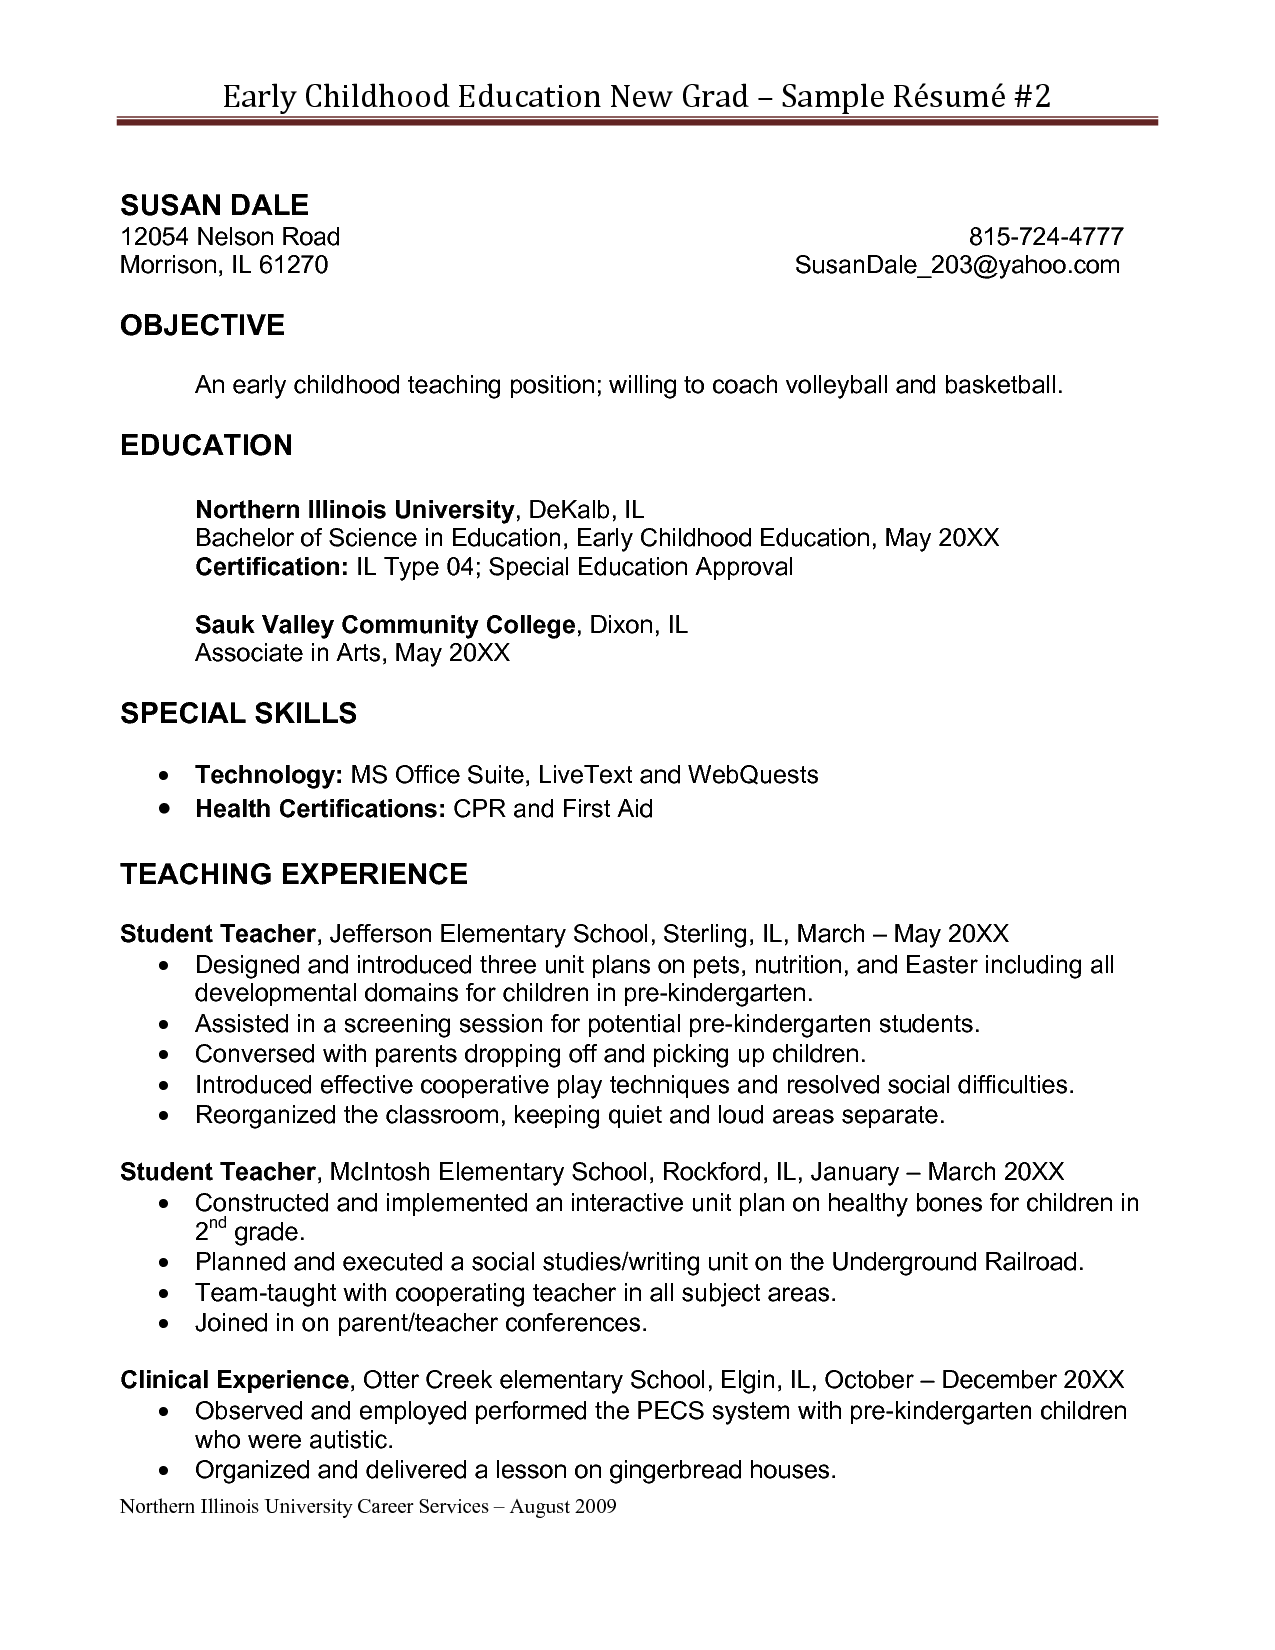 Resume Objective Examples For Teachers